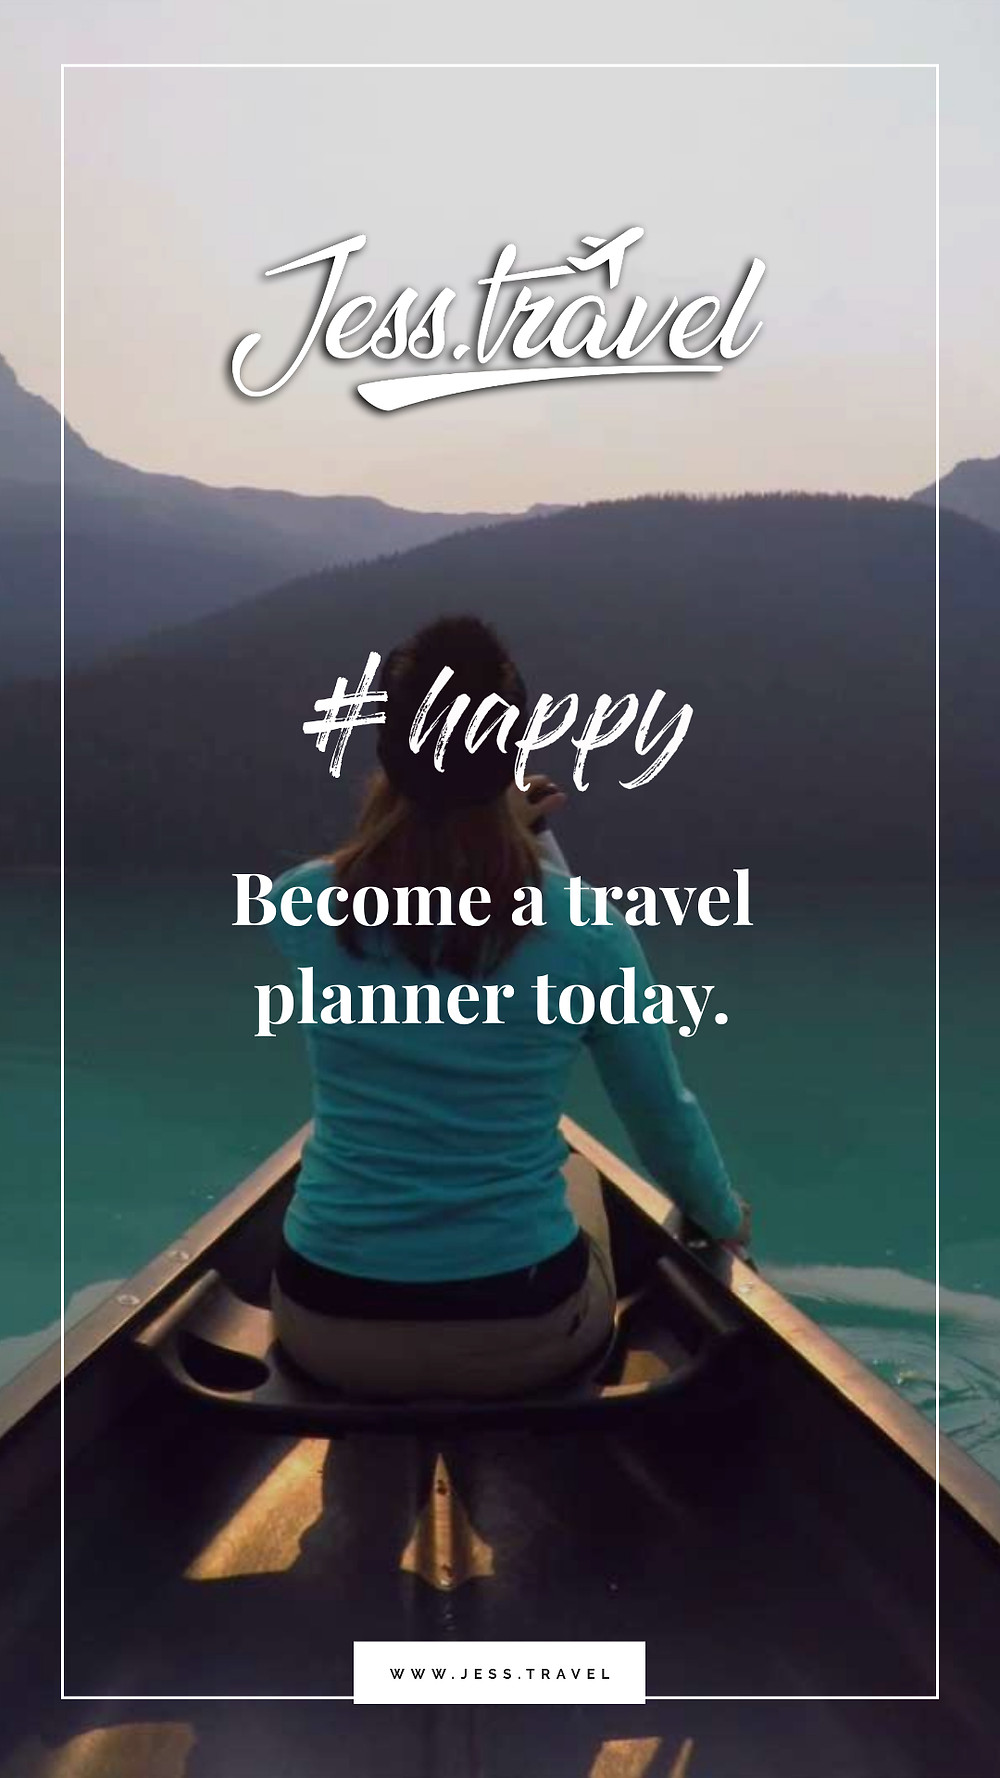 personal travel planner ad